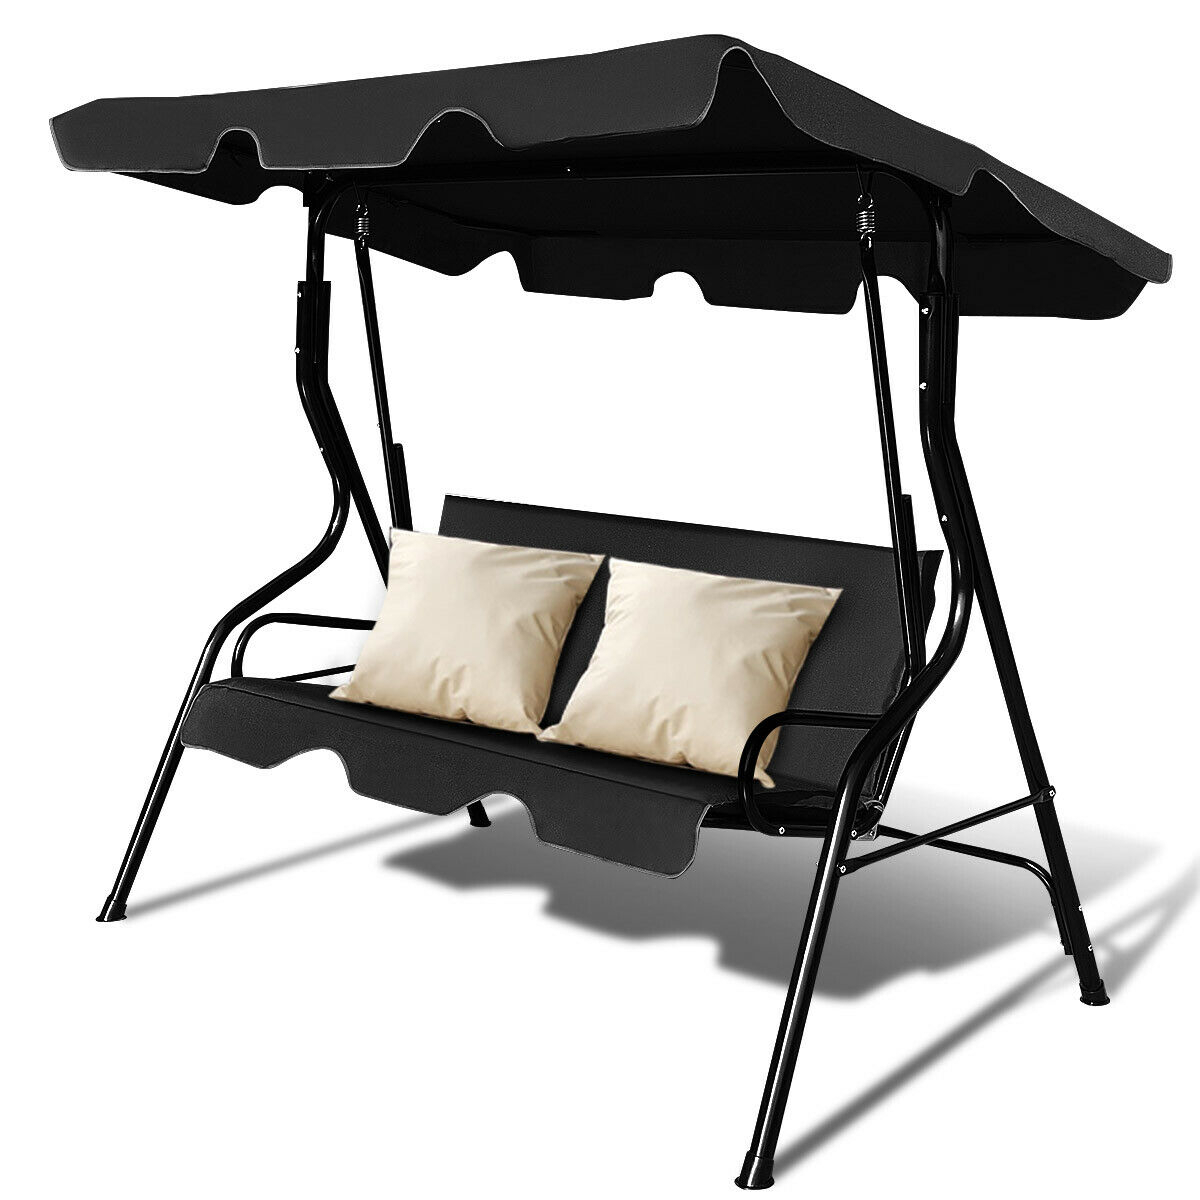 Costway 3 Seats Patio Canopy Swing Glider Hammock Cushioned Steel Frame Backyar Black – Walmart Within 2 Person Outdoor Convertible Canopy Swing Gliders With Removable Cushions Beige (View 17 of 25)